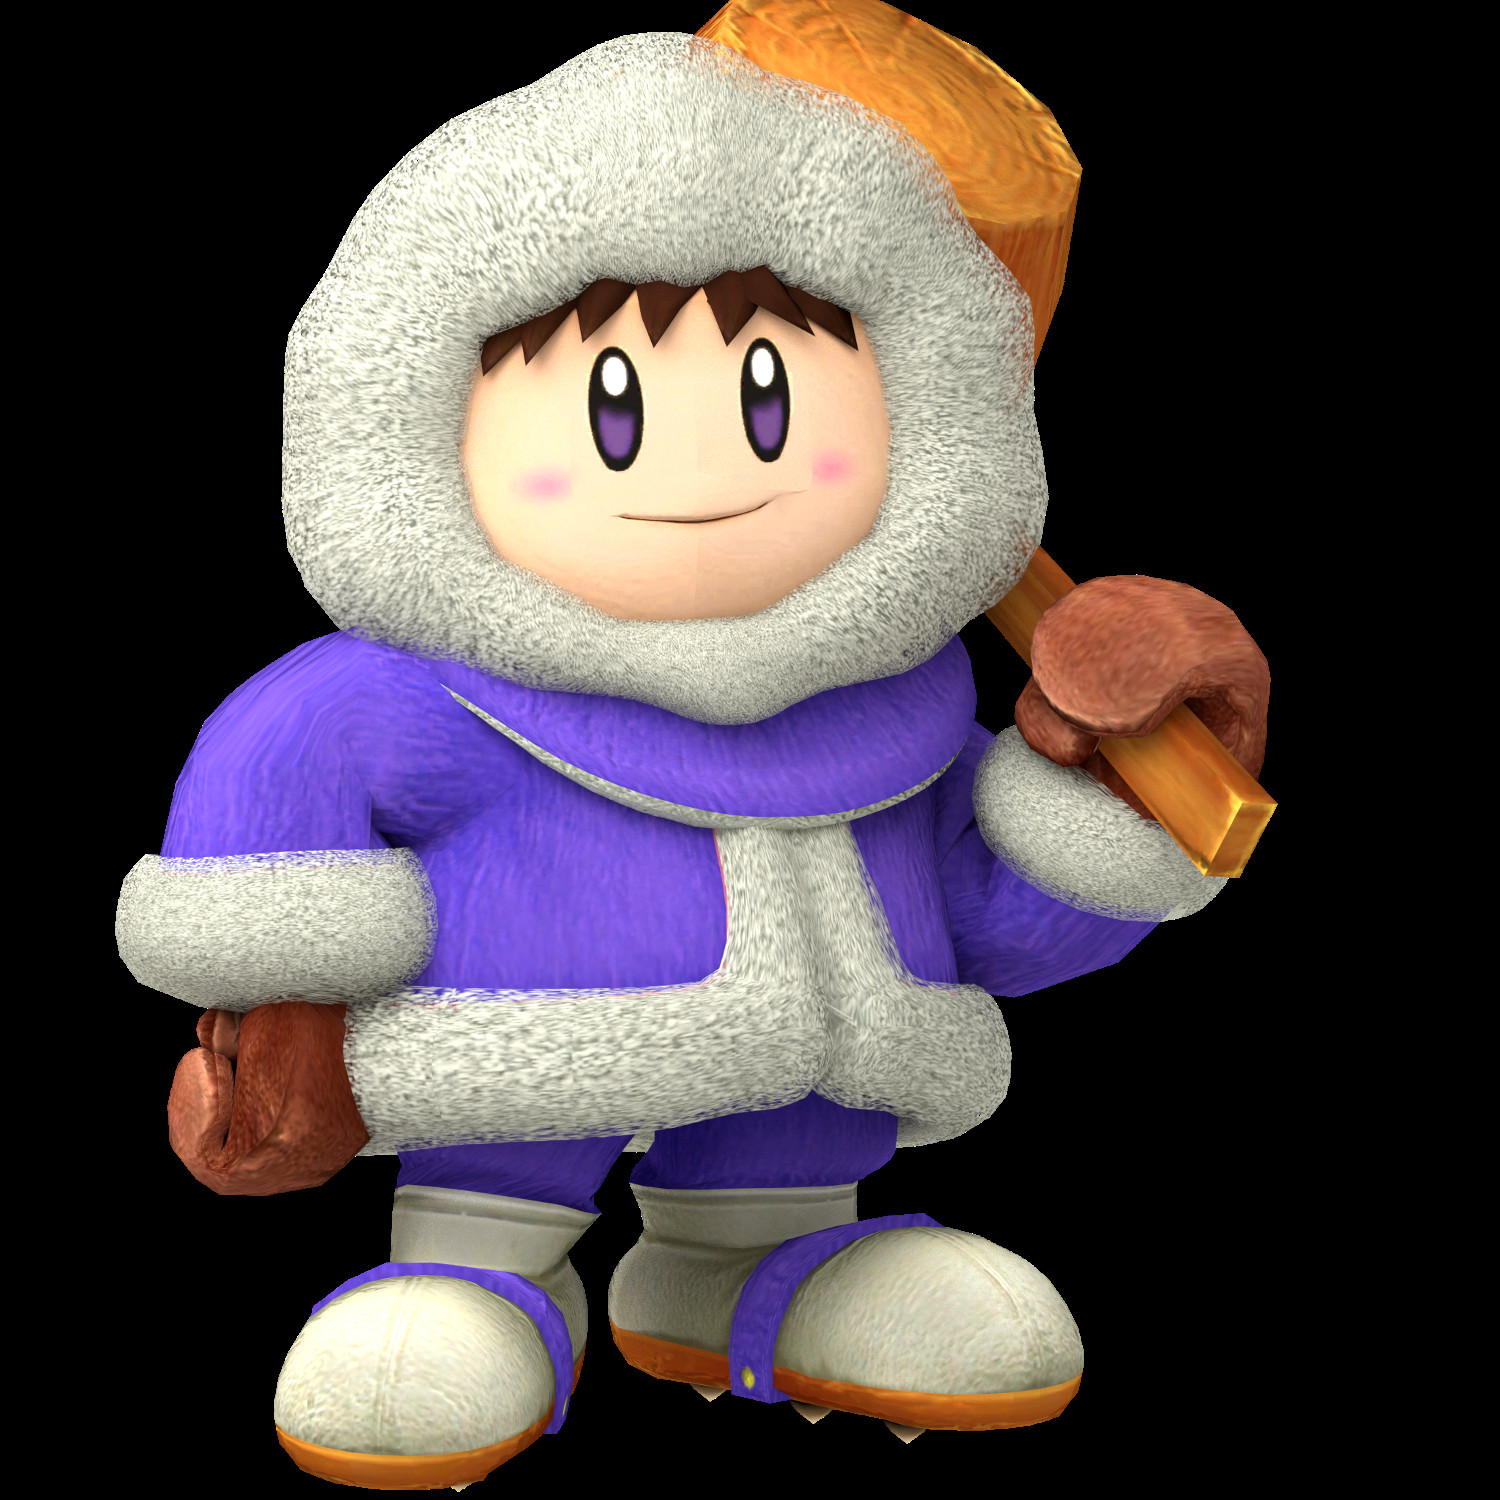 Ice Climbers Super Smash Bros For Wii U Gt WiPs